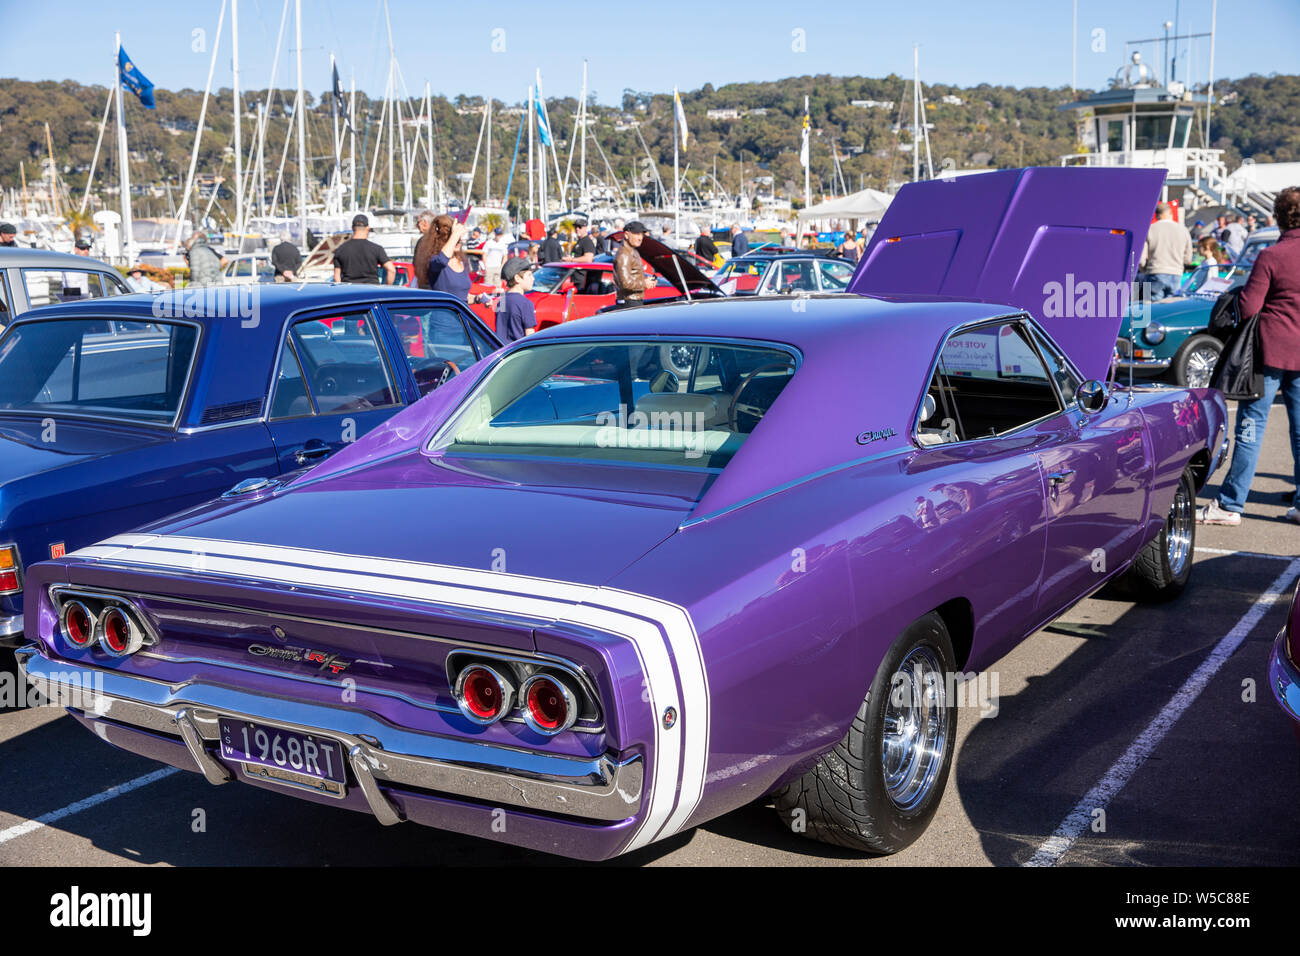 1968 Dodge Charger Rt 440 Classic American Muscle Car On Display At A Classic Car Show In Newport Sydney Australia Stock Photo Alamy